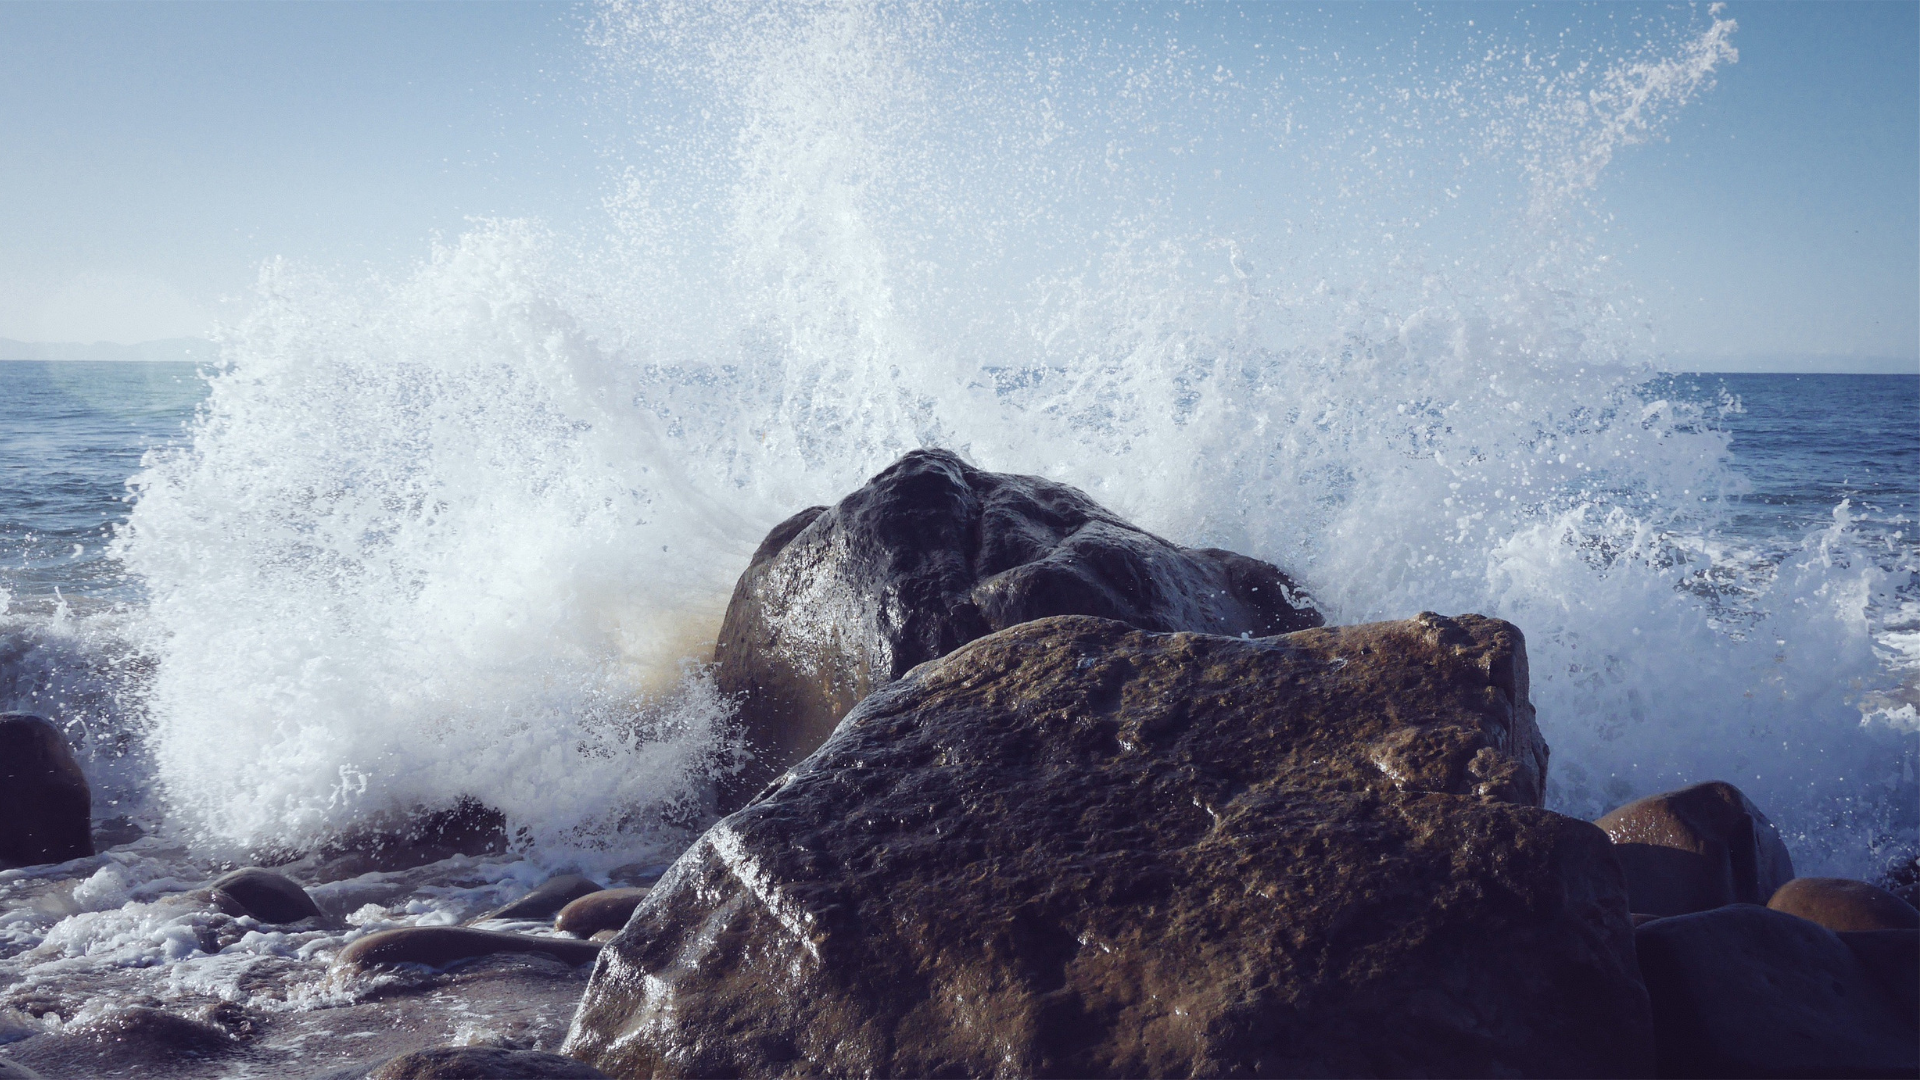 Waves crash into a solid rock, spraying high